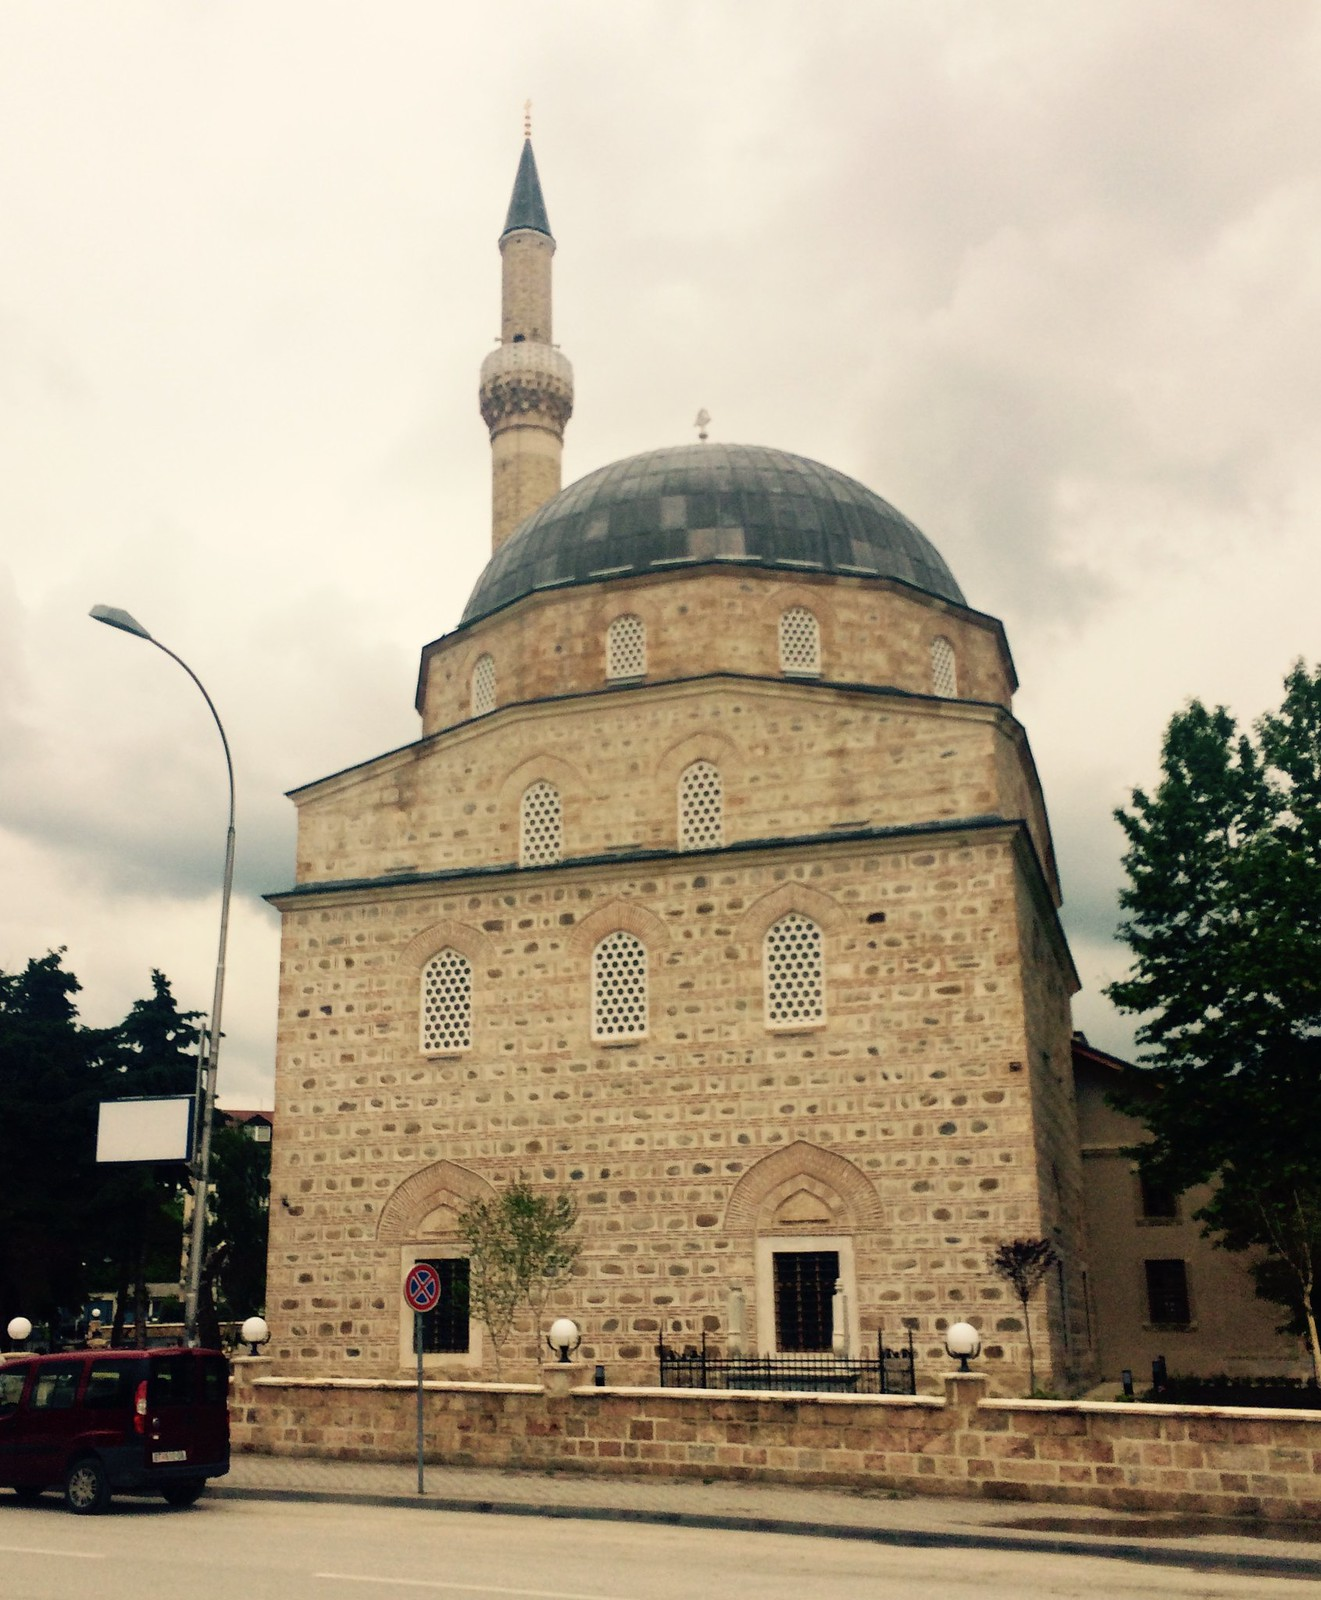 201705 - Balkans - Yeni Mosque - 30 of 40 - Bitola, May 27, 2017